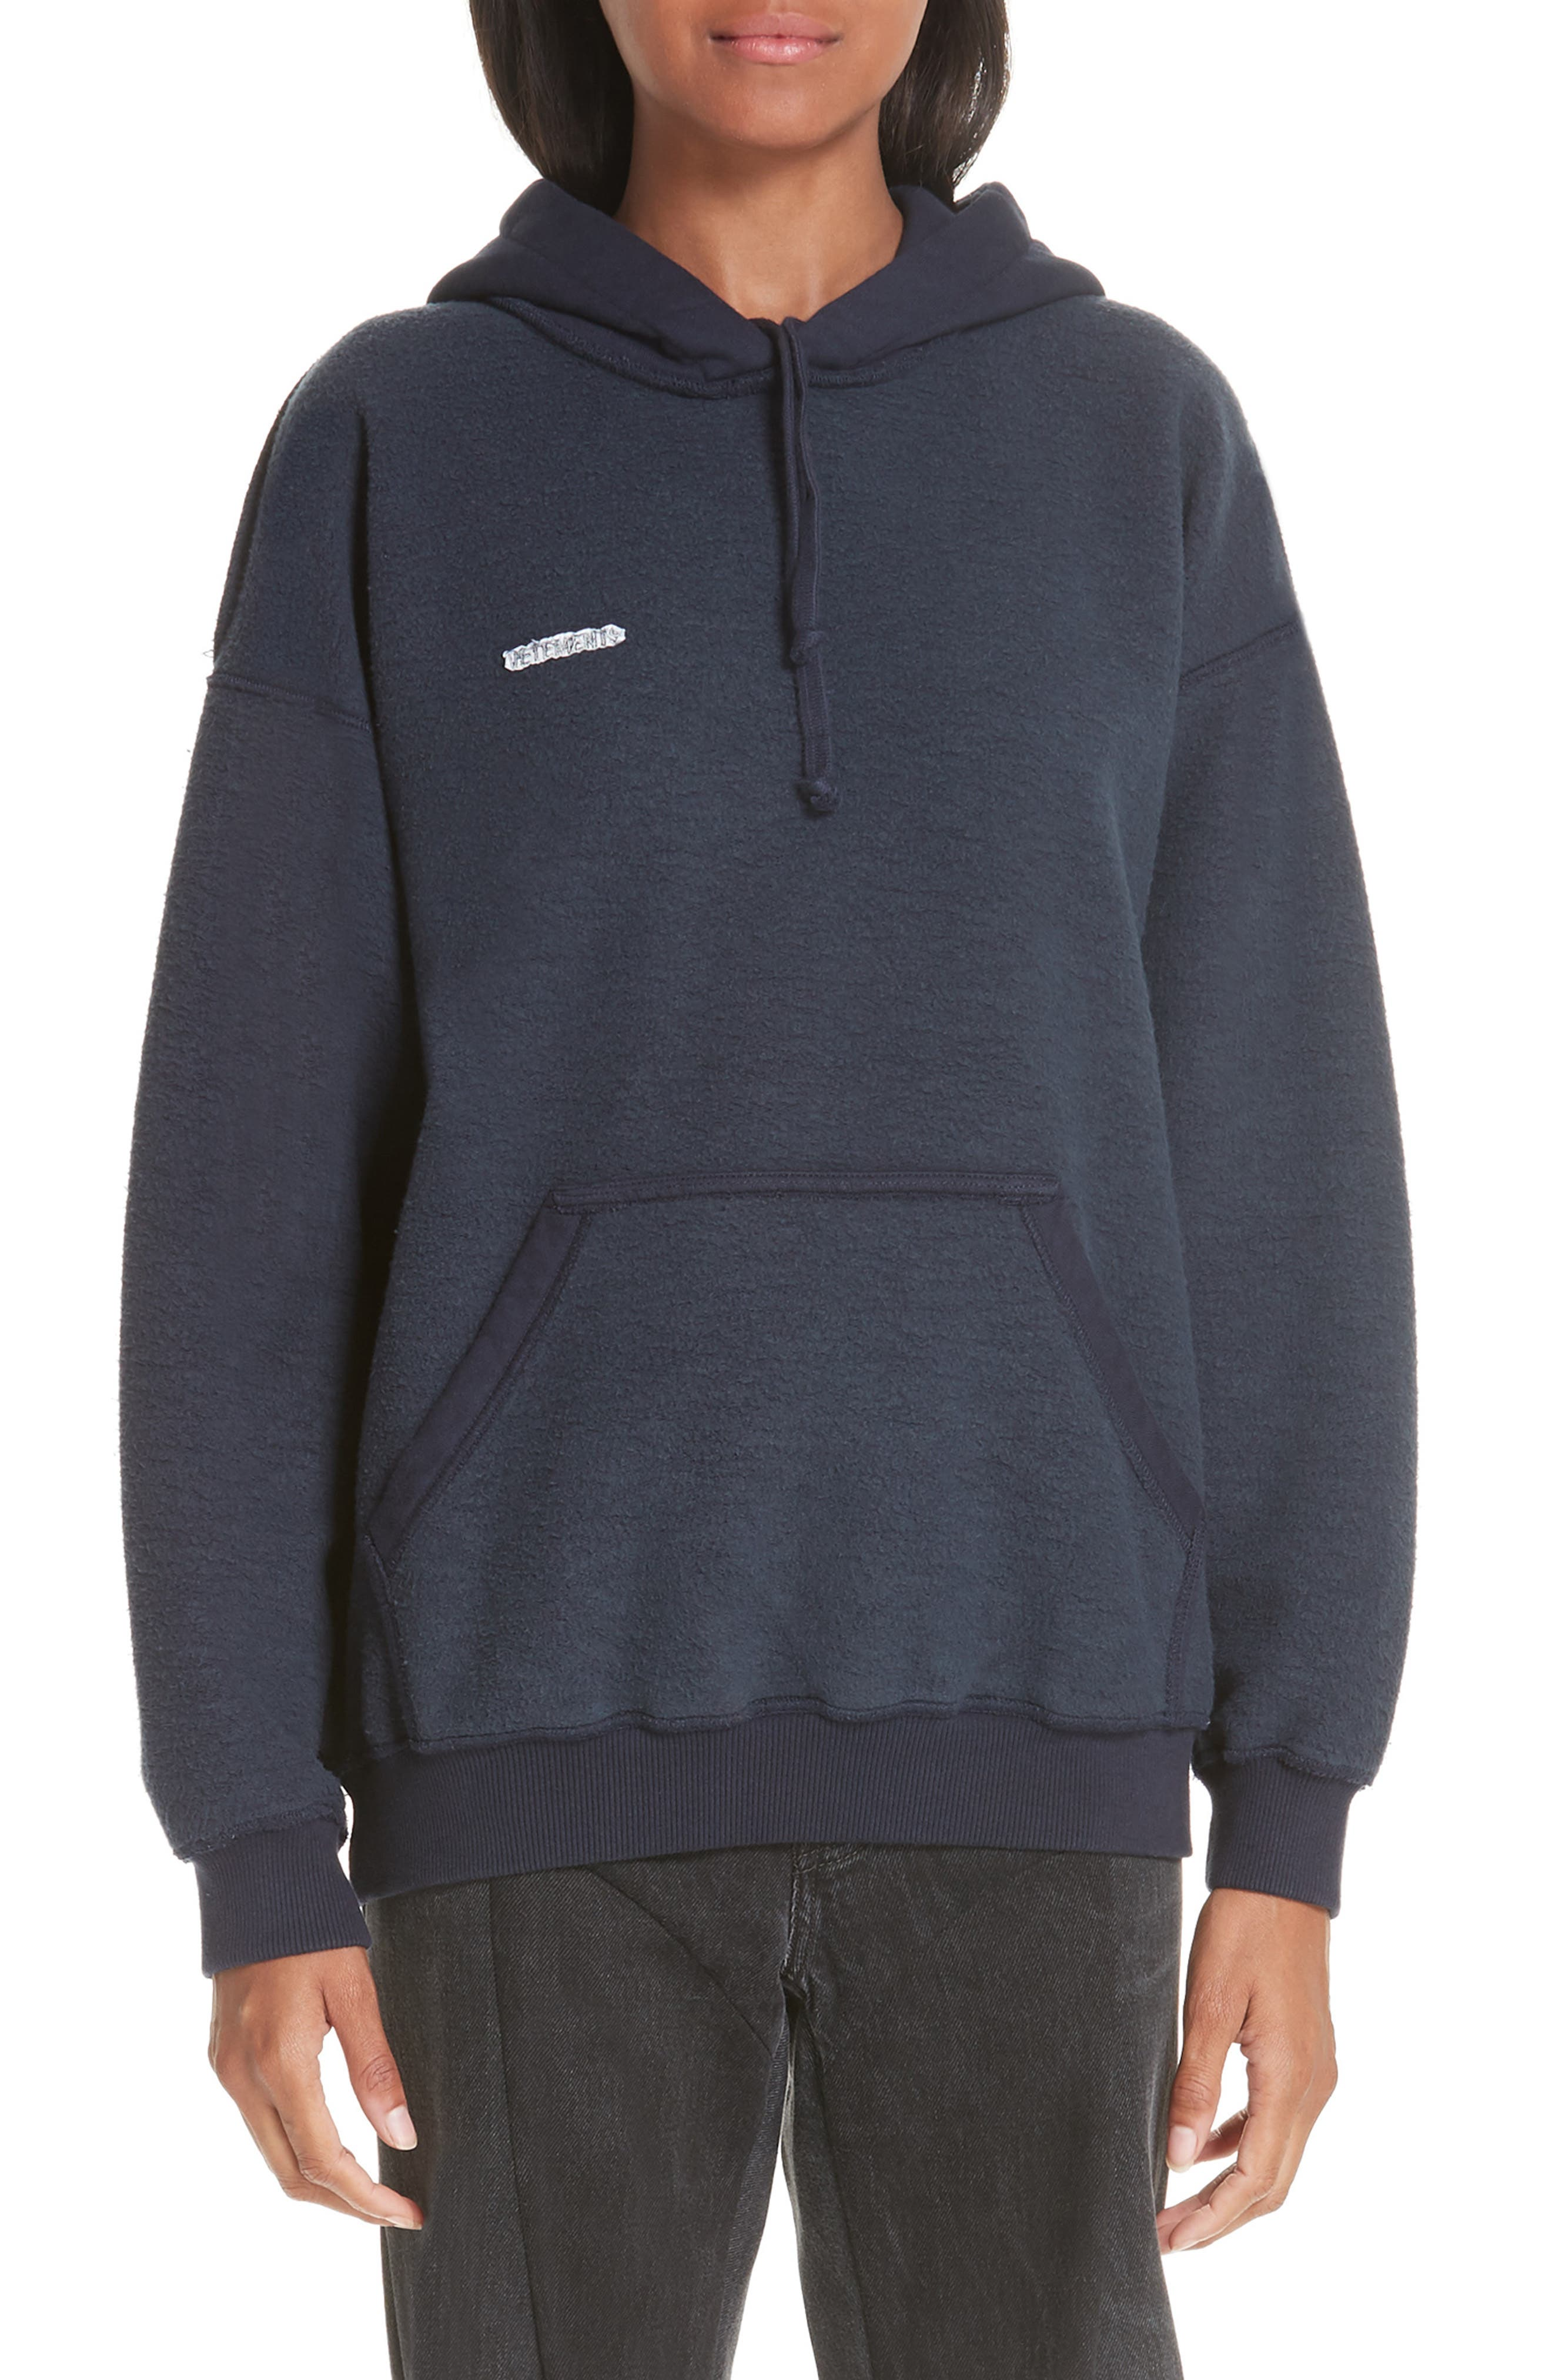 Inside-Out Hoodie,                             Main thumbnail 1, color,                             NAVY